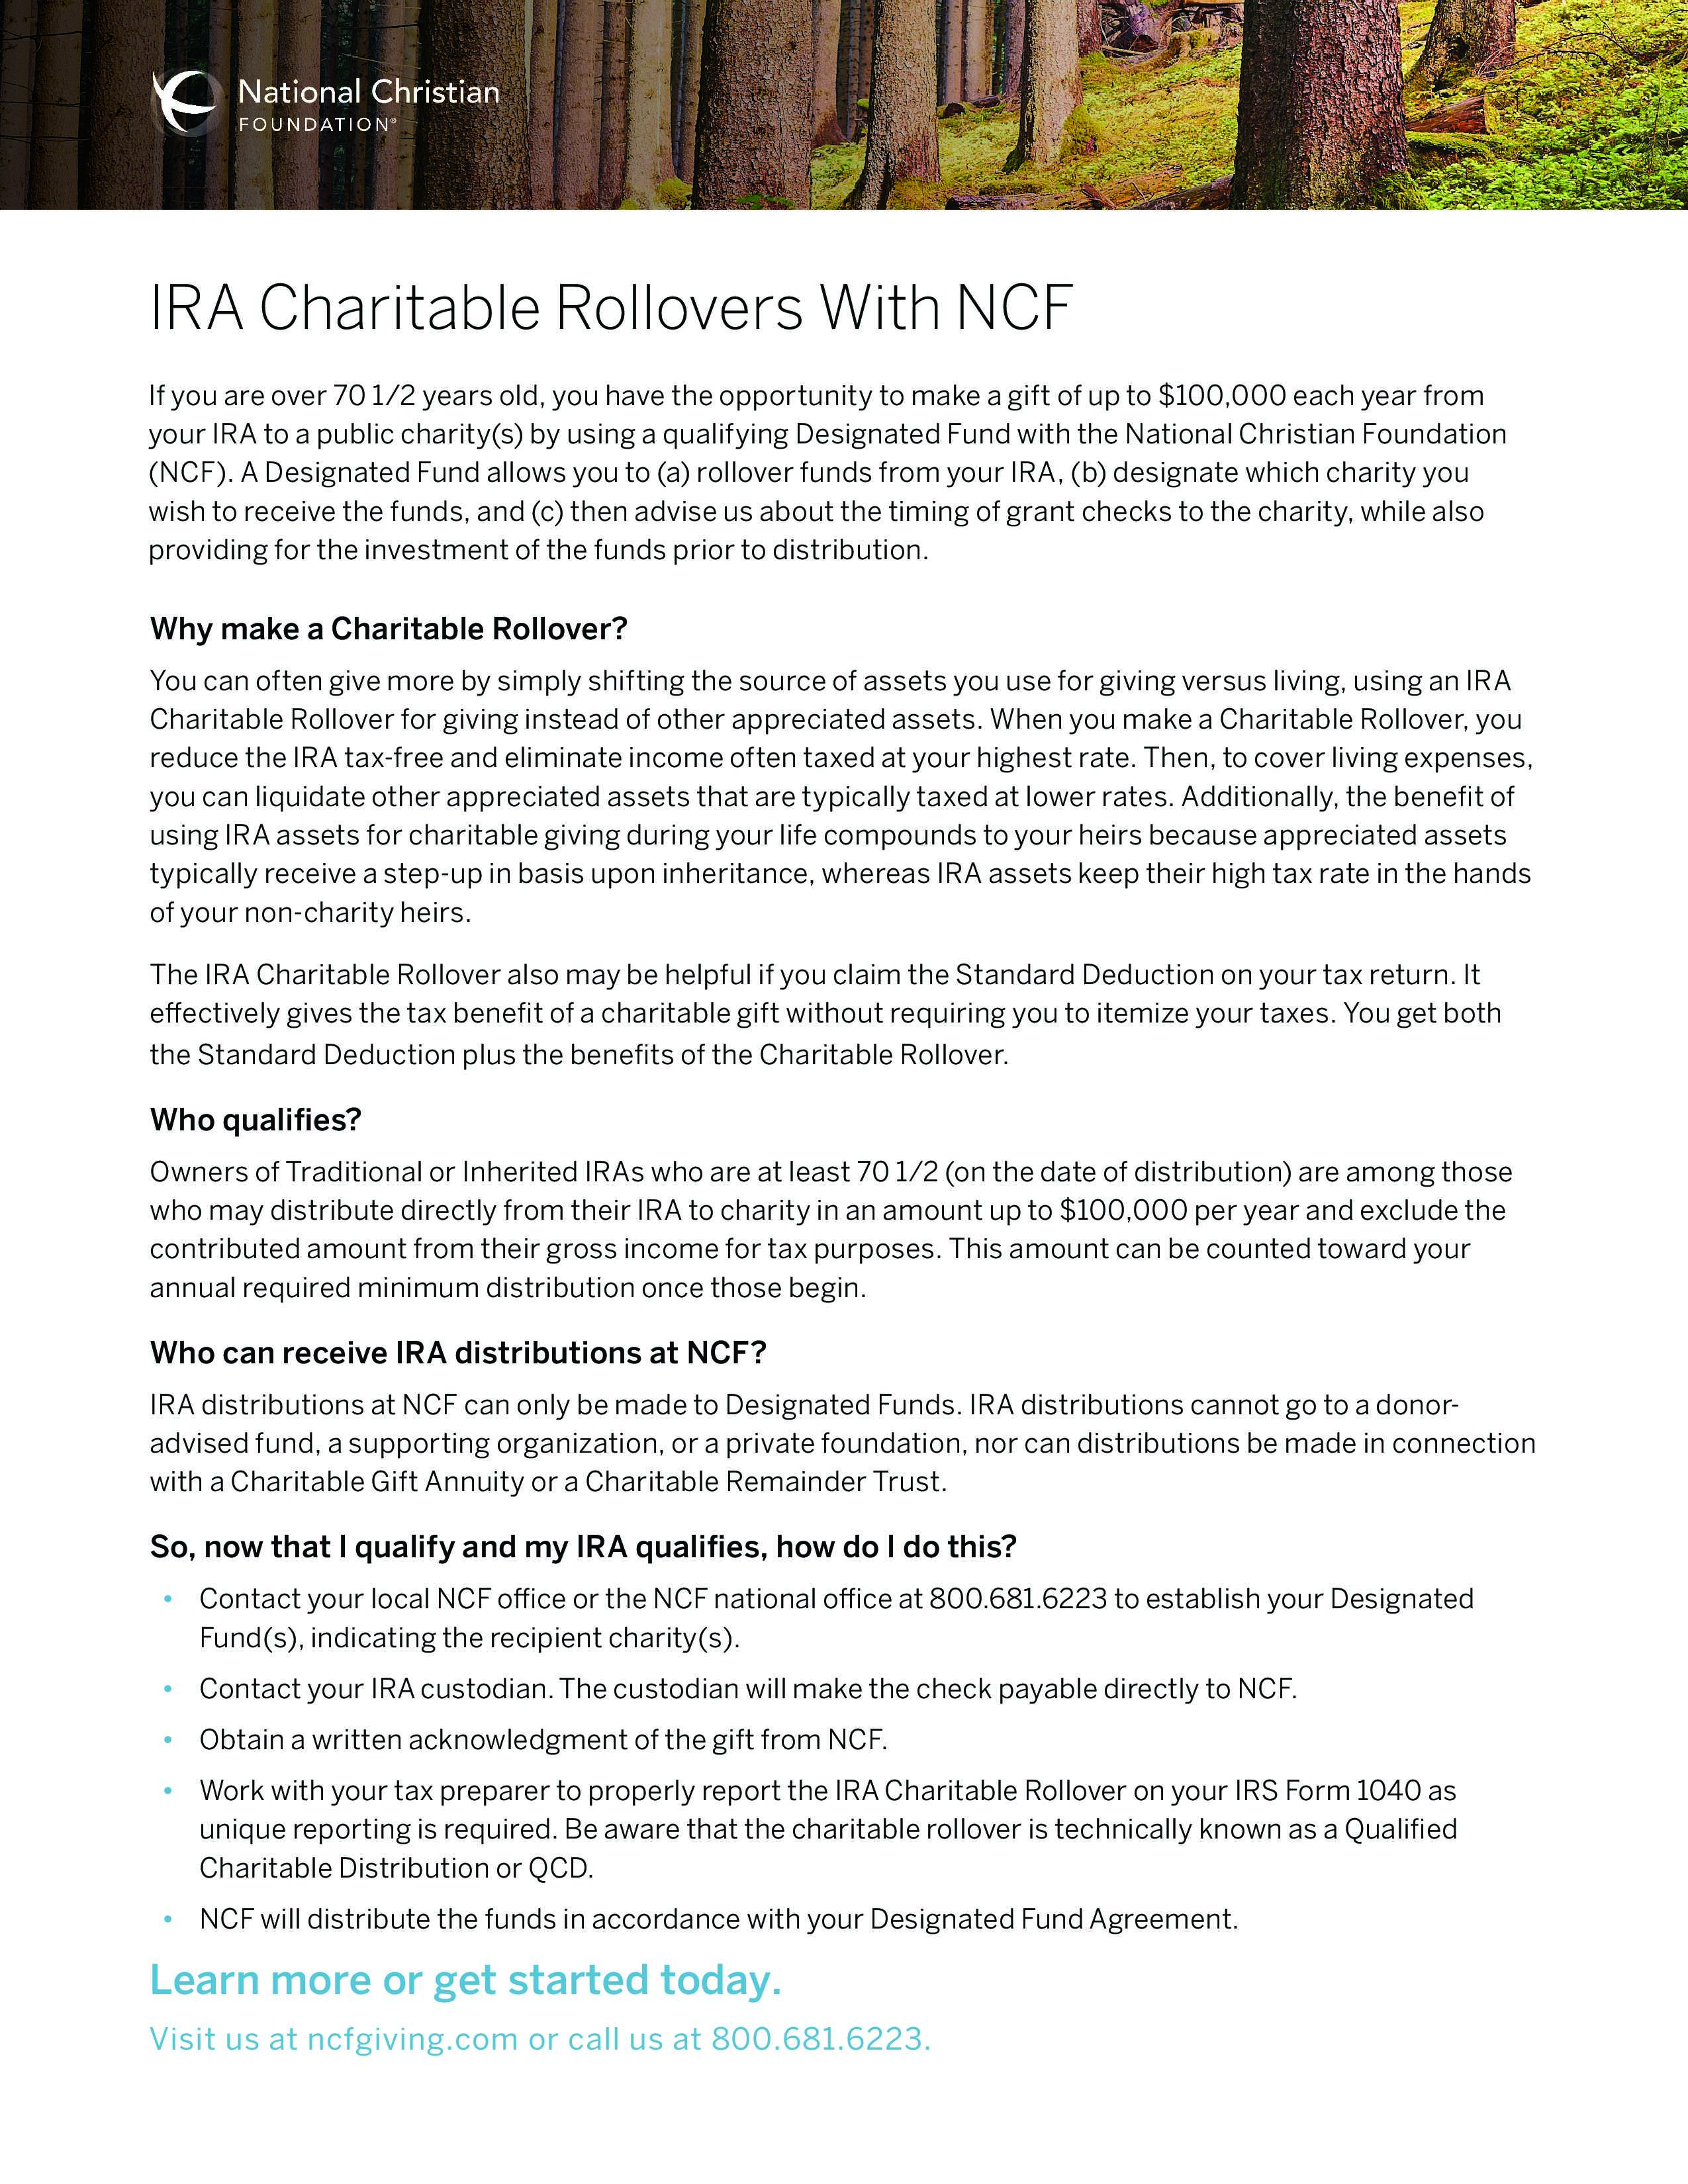 IRA Charitable Rollovers With NCF